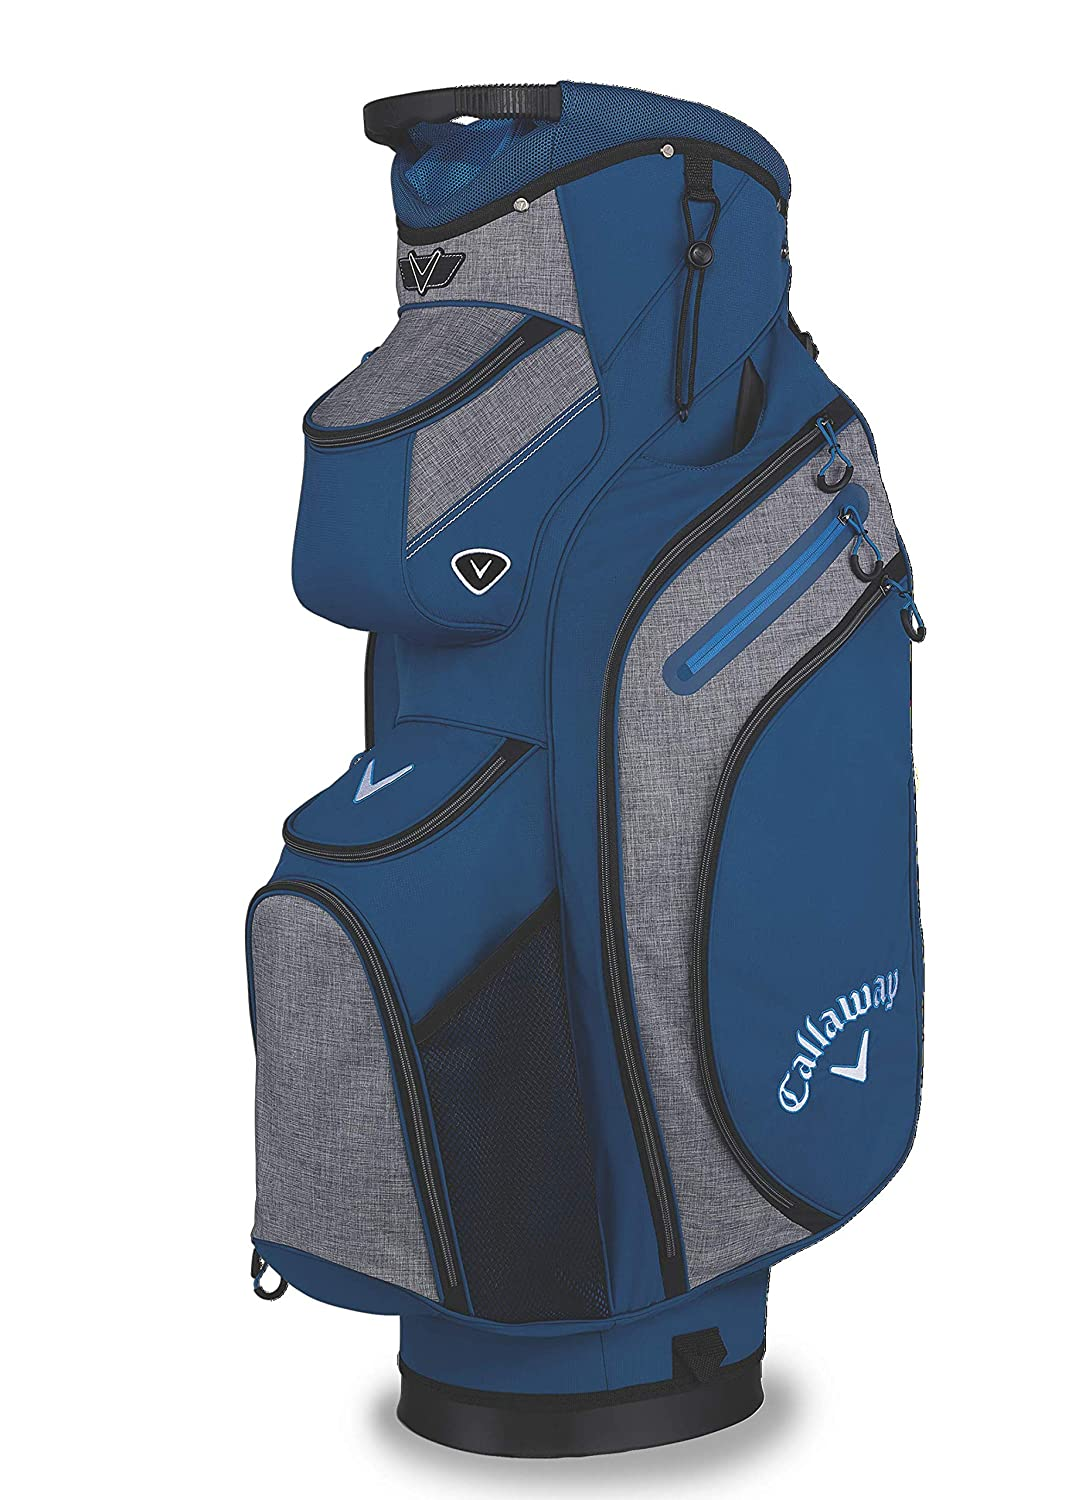 Amazon.com: Callaway Premium - Bolsa de golf: Sports & Outdoors